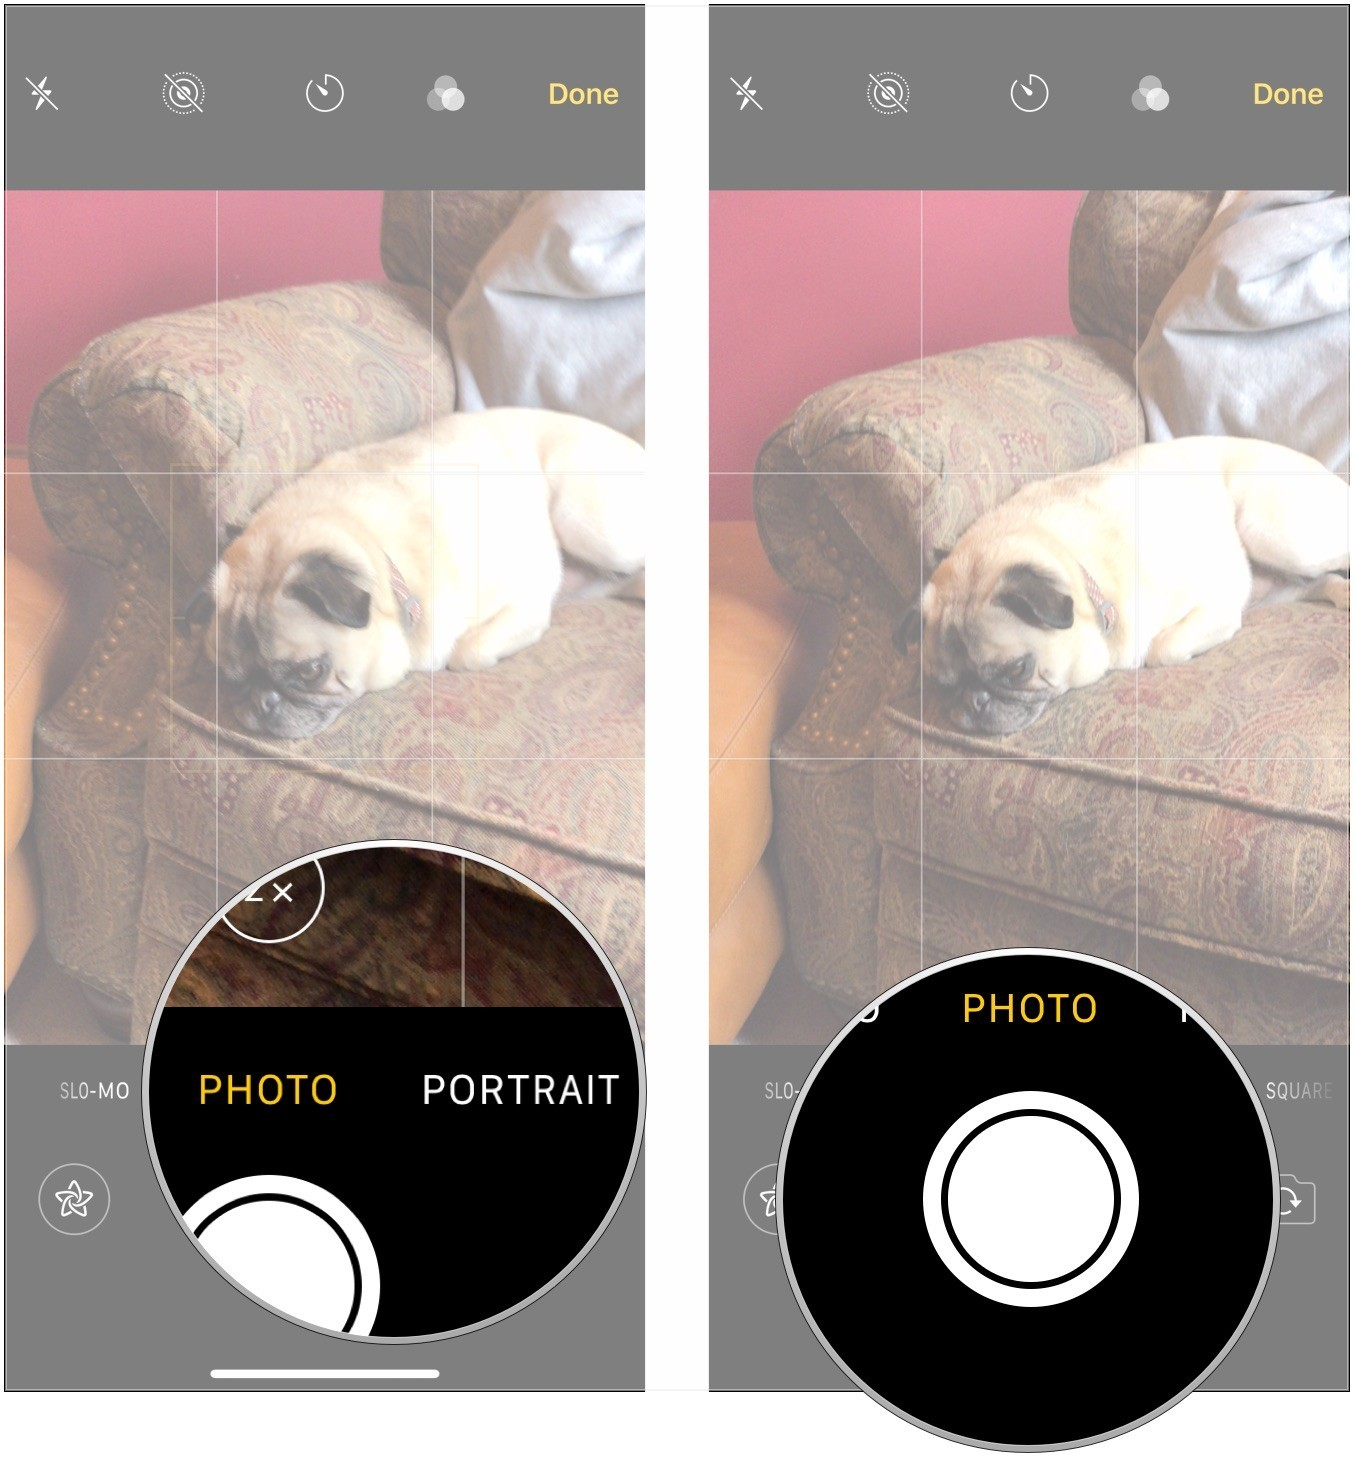 Choose photo or video type, take photo or video